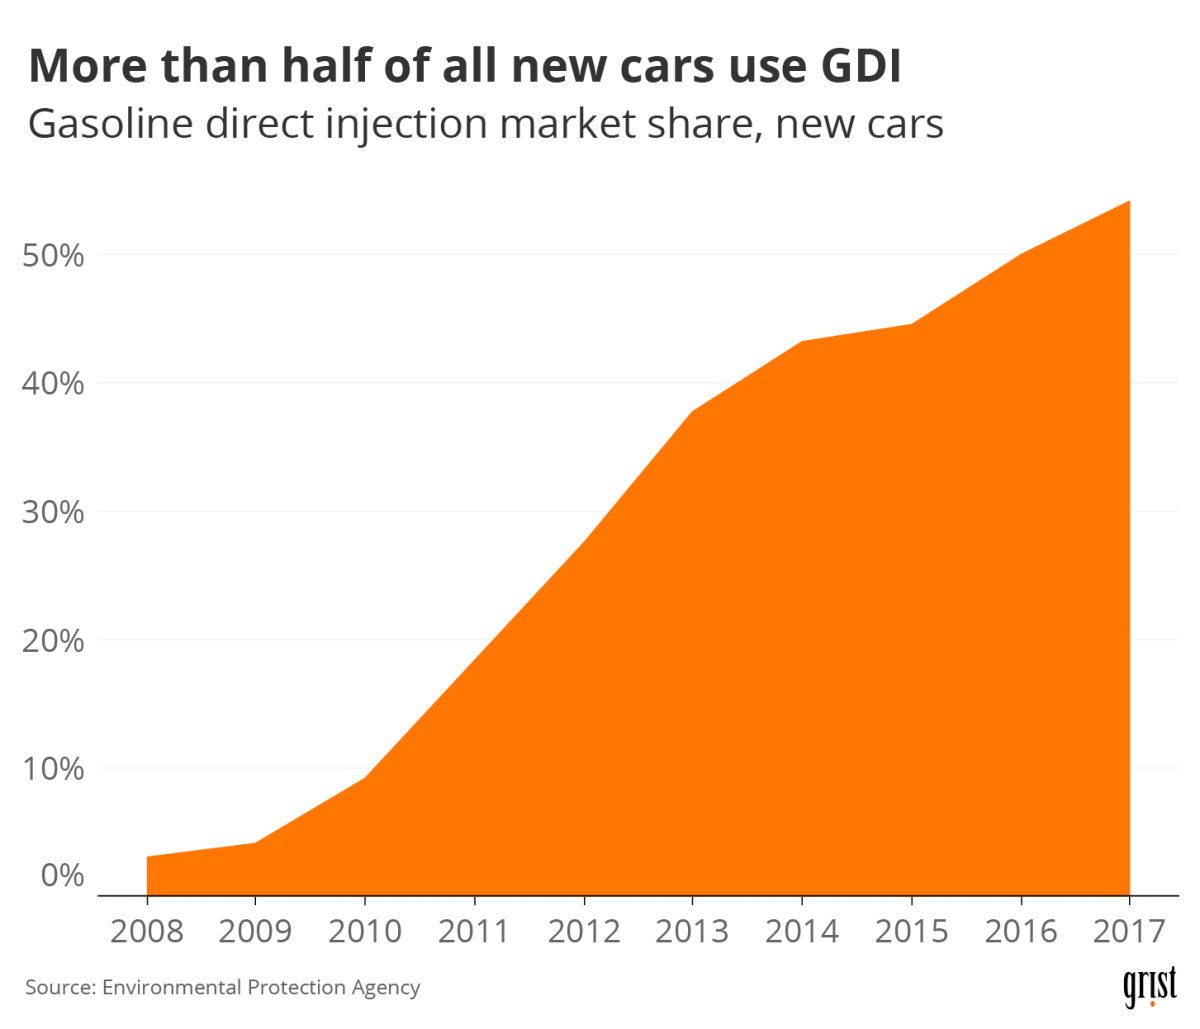 An area chart showing increasing market share of gasoline direct injection in new cars between 2008 and 2017